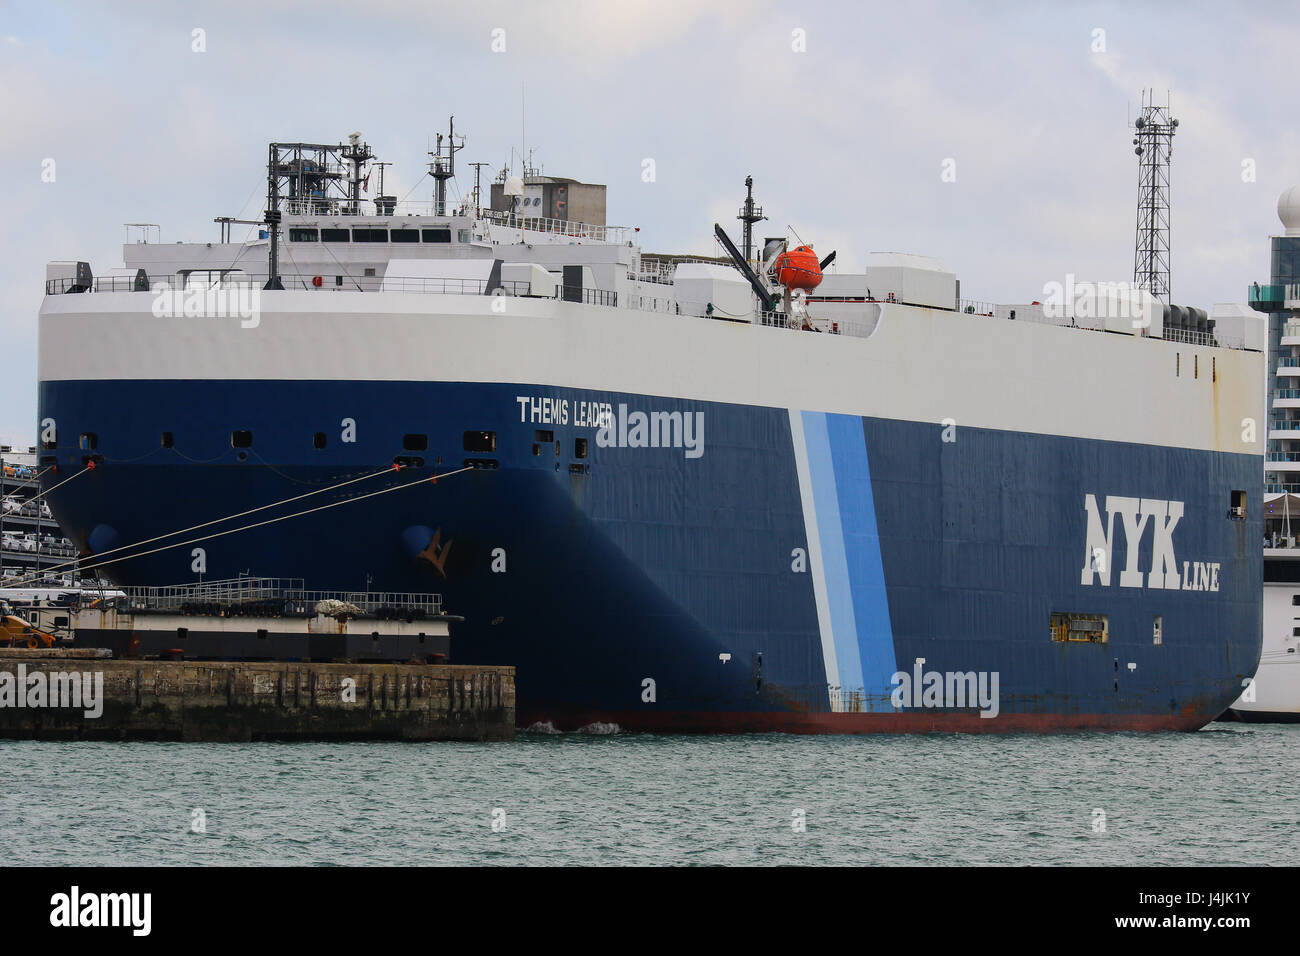 NYK Line vehicle carrier Themis Leader sits in Southampton Docks, UK - Stock Image